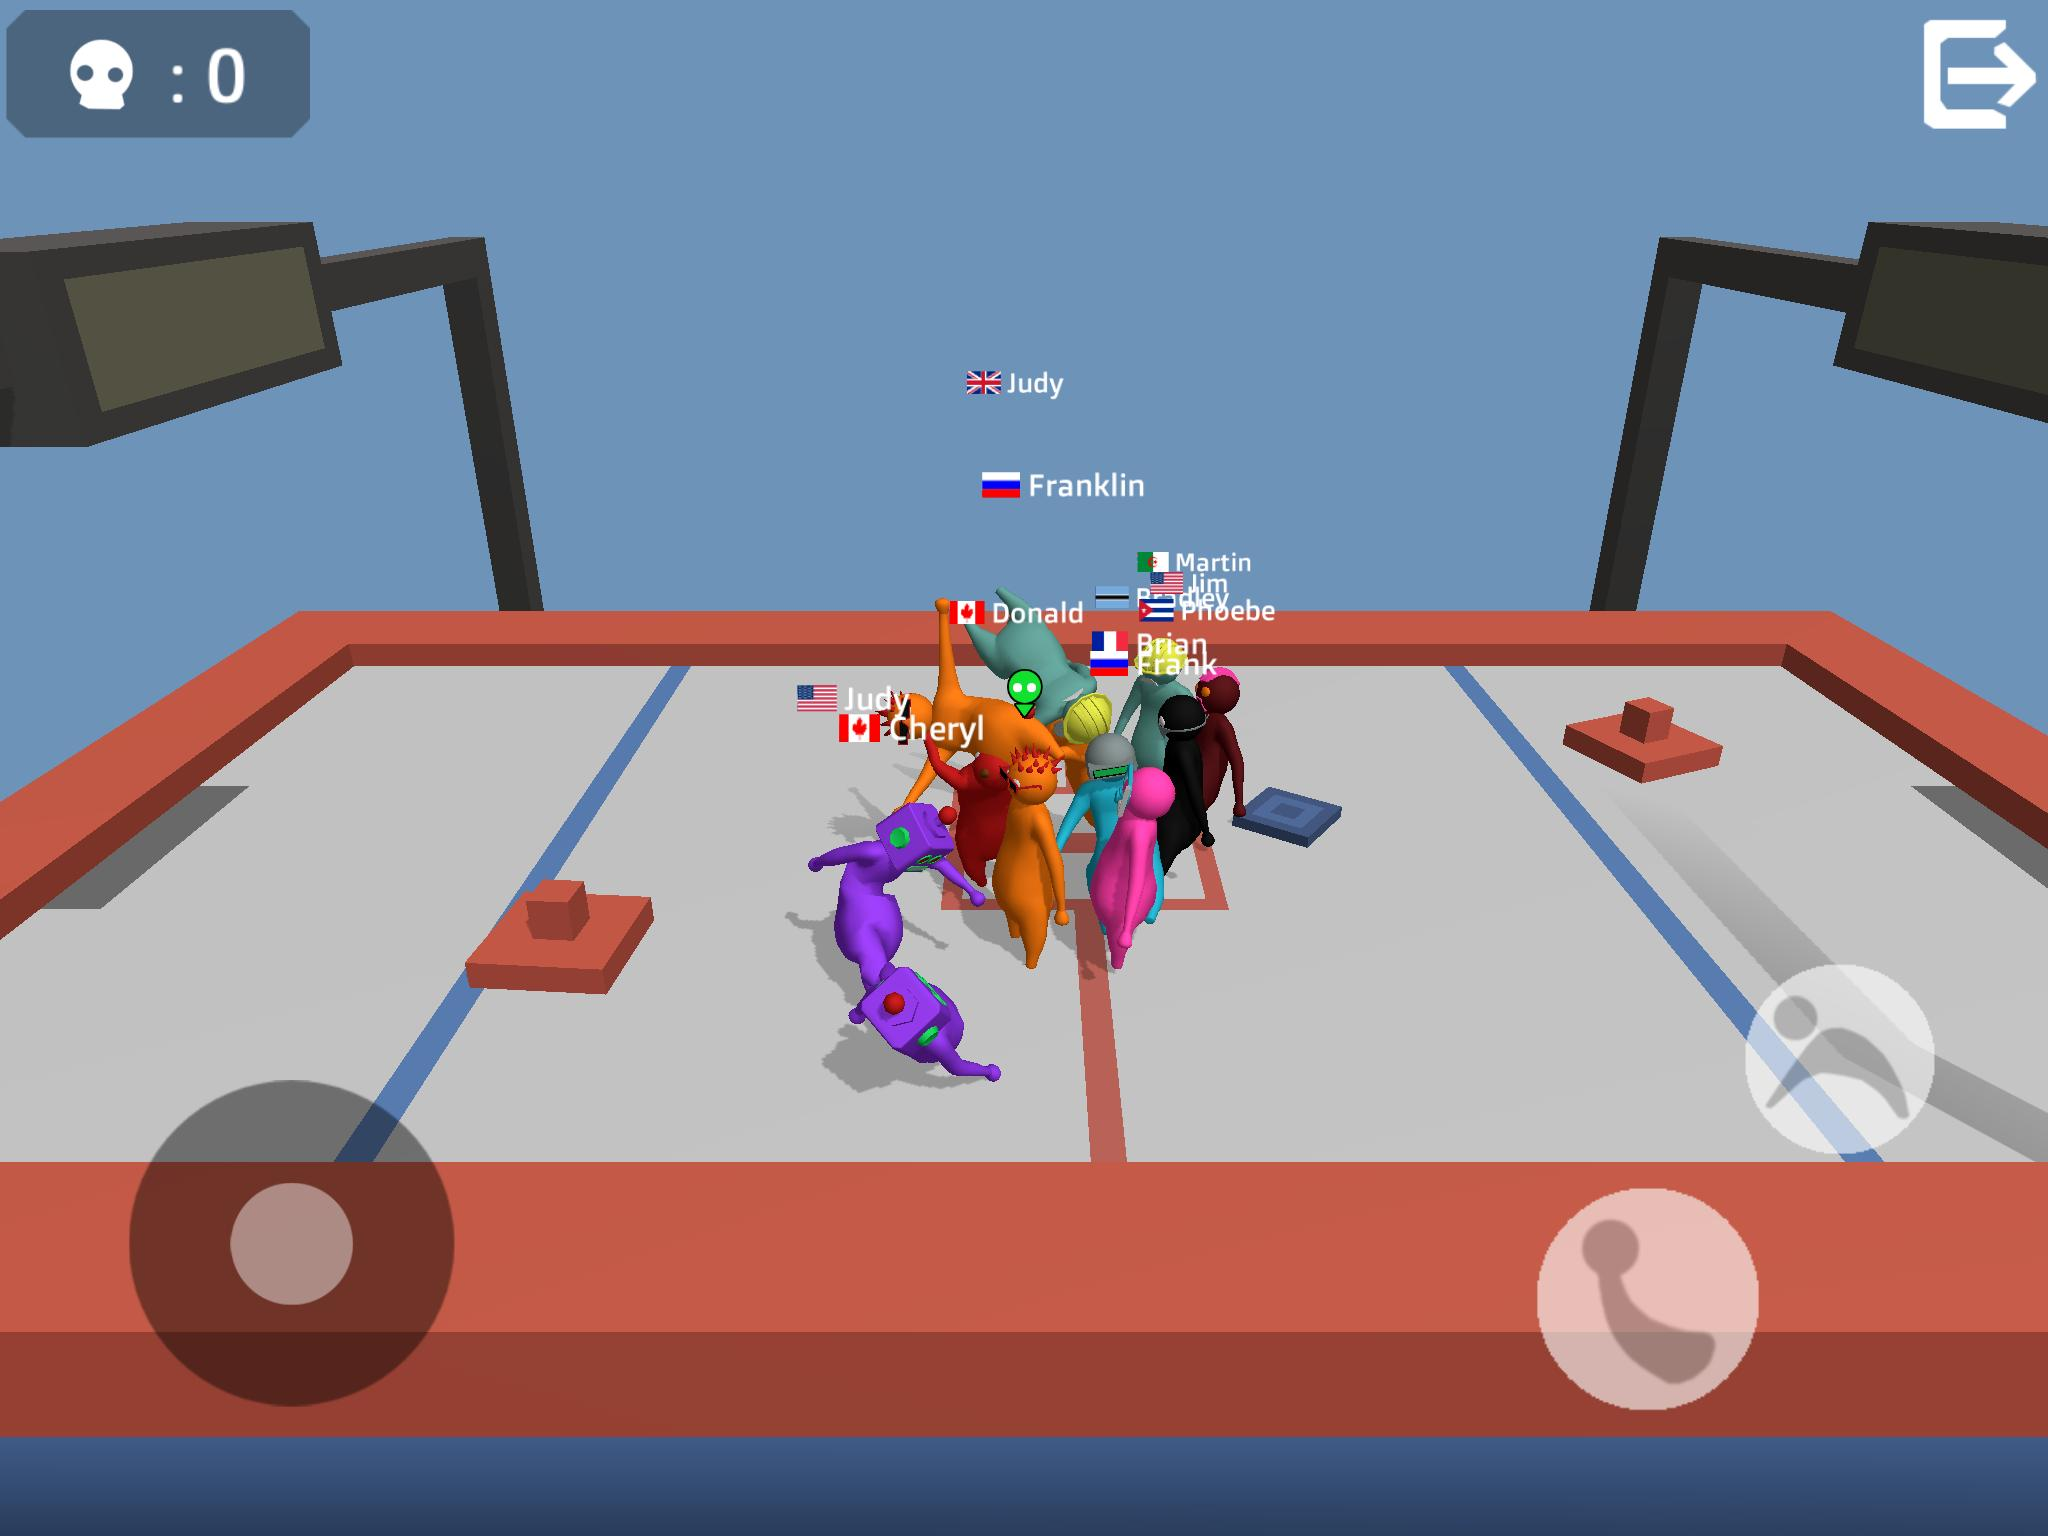 Noodleman.io - Fight Party Games 3.3 Screenshot 12